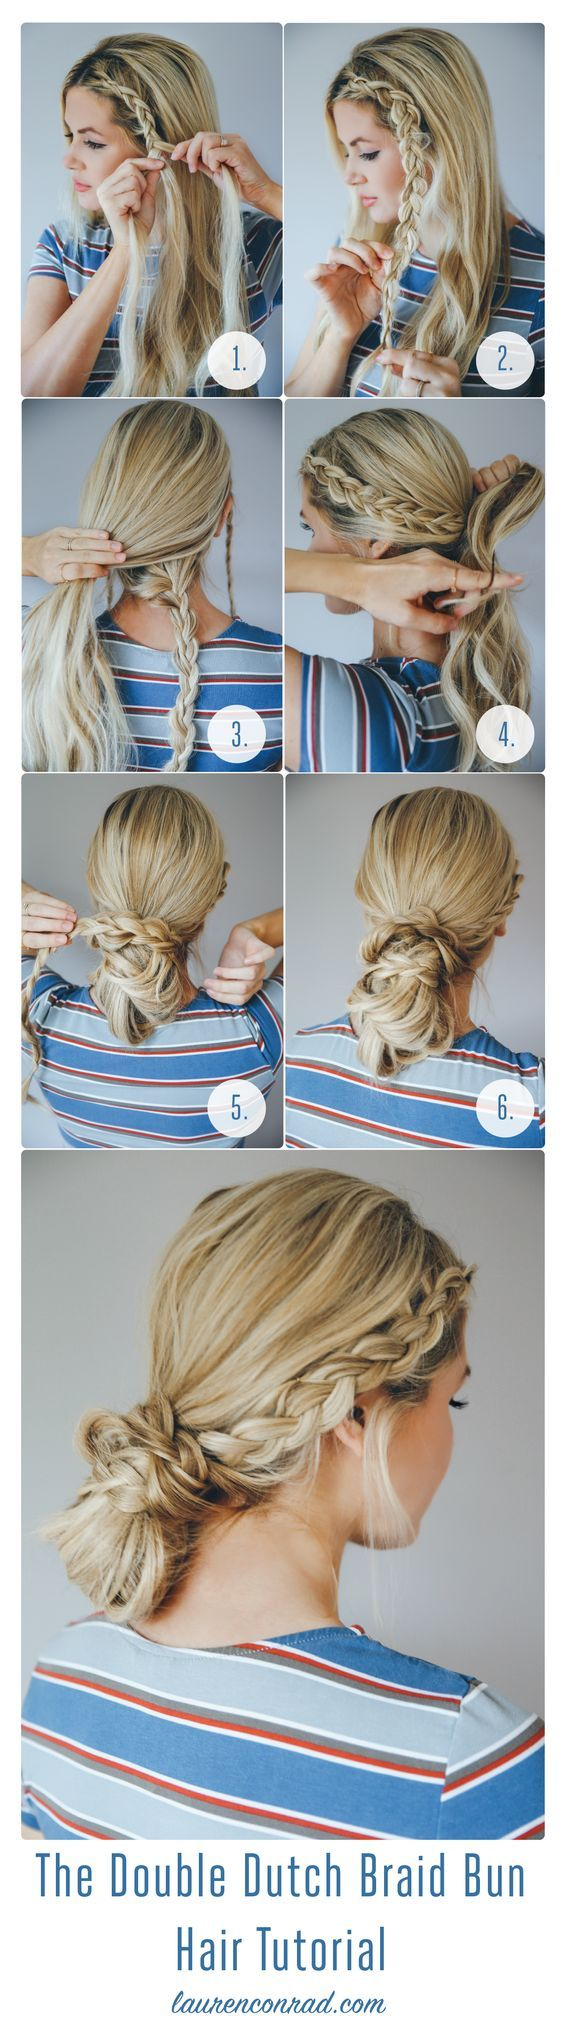 20 Hair Styles You Can Totally DIY - Page 2 of 5 - Trend To Wear